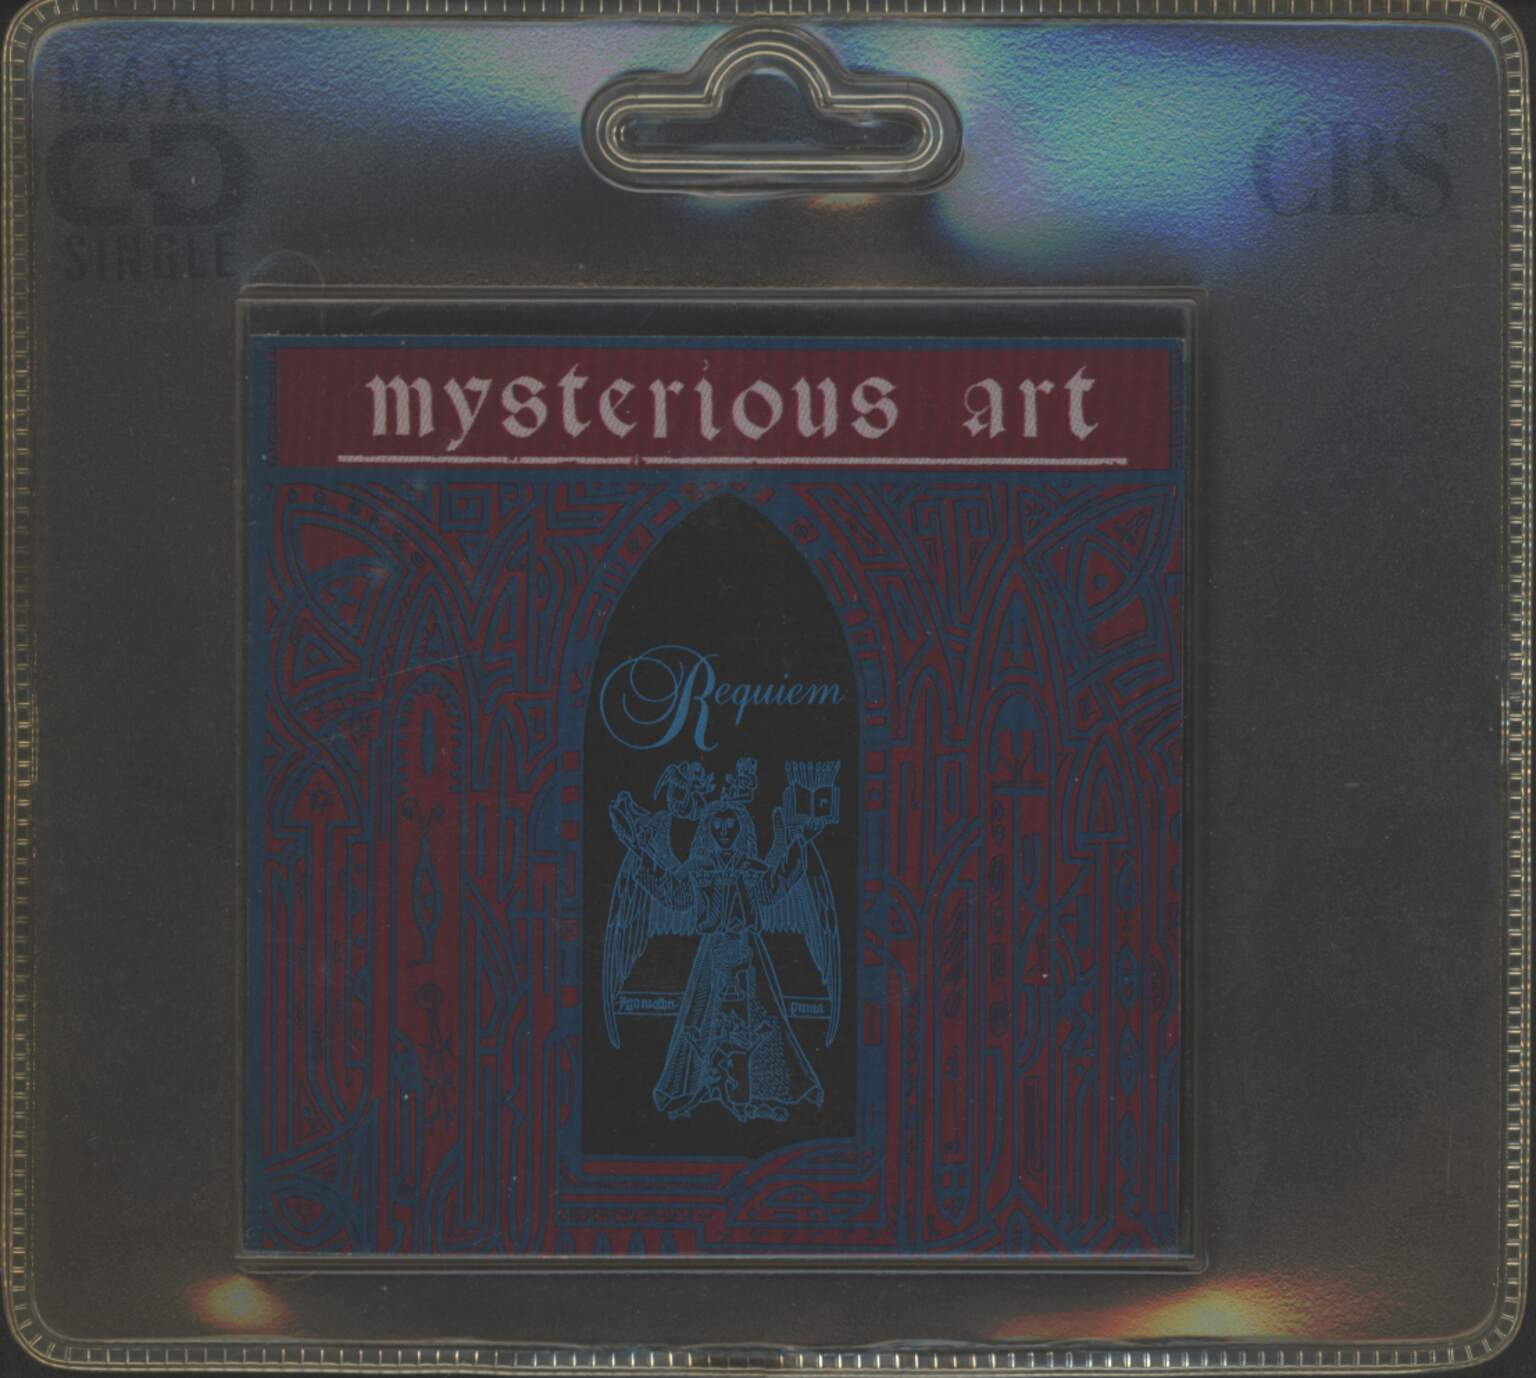 Mysterious Art: Requiem, Mini CD